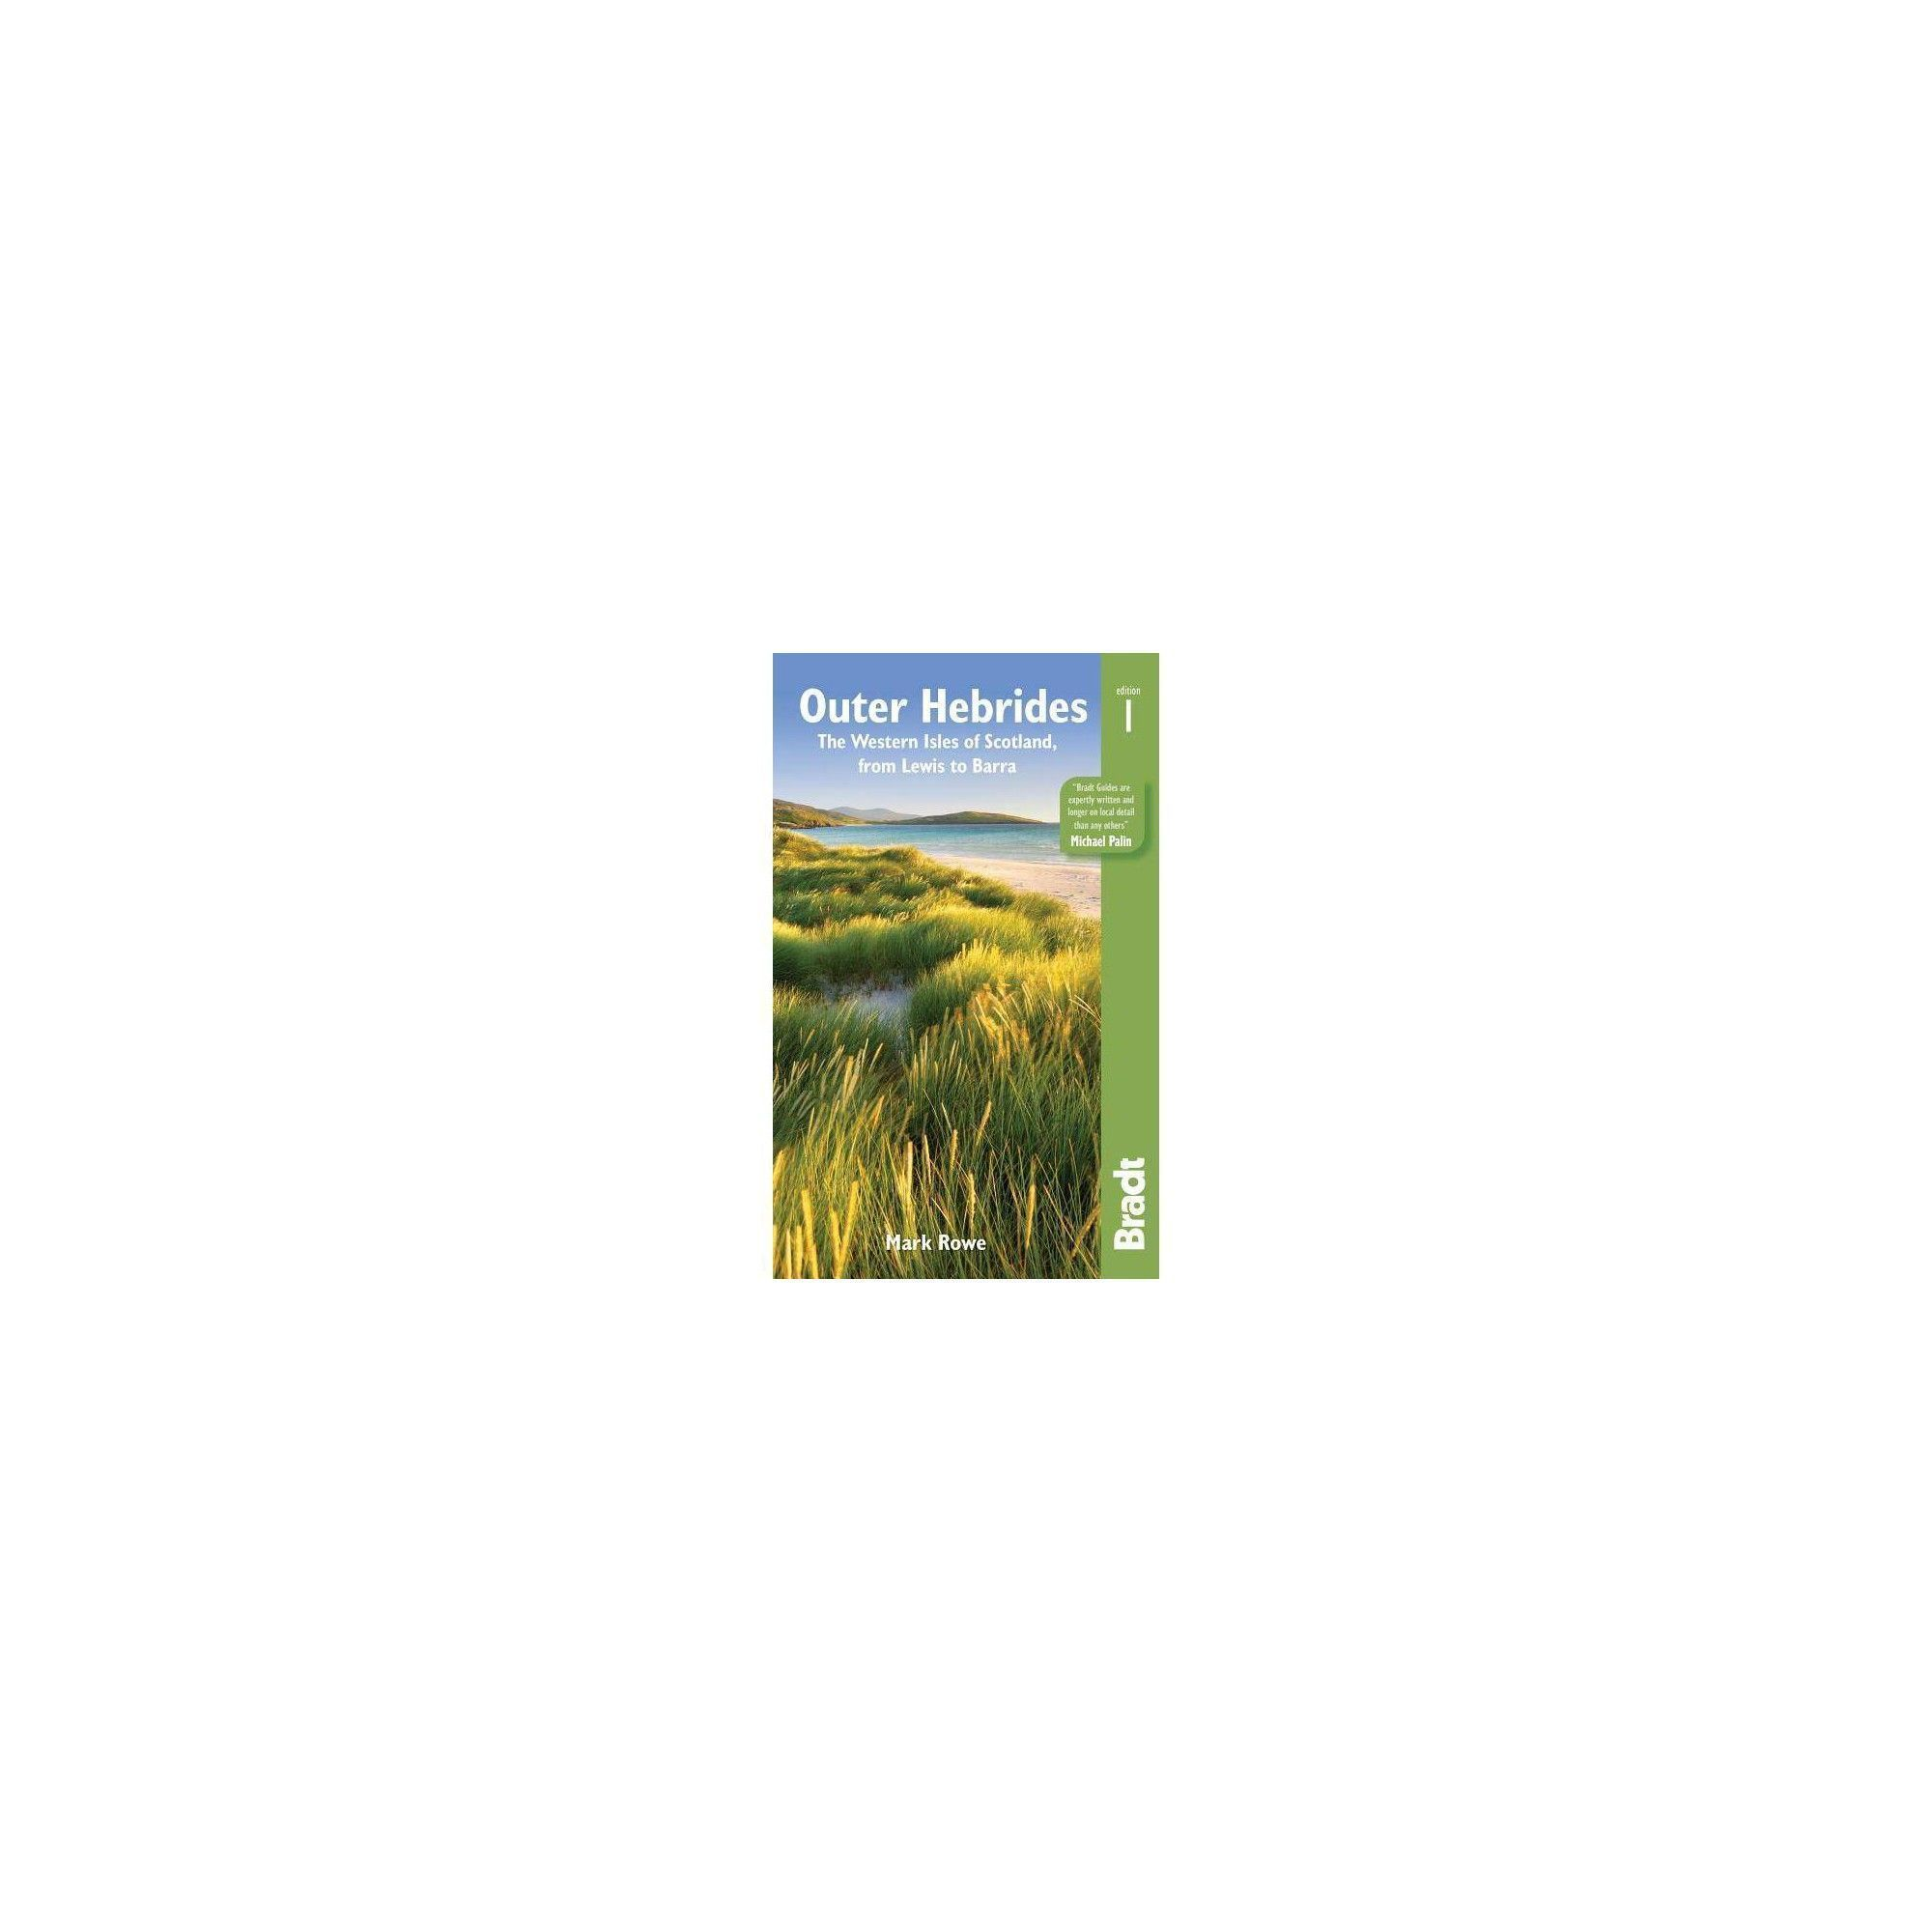 Outer Hebrides - (Bradt Travel Guide Outer Hebrides: The Western Isles of Scot) by Mark Rowe #outerhebrides Outer Hebrides - (Bradt Travel Guide Outer Hebrides: The Western Isles of Scot) by Mark Rowe #outerhebrides Outer Hebrides - (Bradt Travel Guide Outer Hebrides: The Western Isles of Scot) by Mark Rowe #outerhebrides Outer Hebrides - (Bradt Travel Guide Outer Hebrides: The Western Isles of Scot) by Mark Rowe #outerhebrides Outer Hebrides - (Bradt Travel Guide Outer Hebrides: The Western Isl #outerhebrides